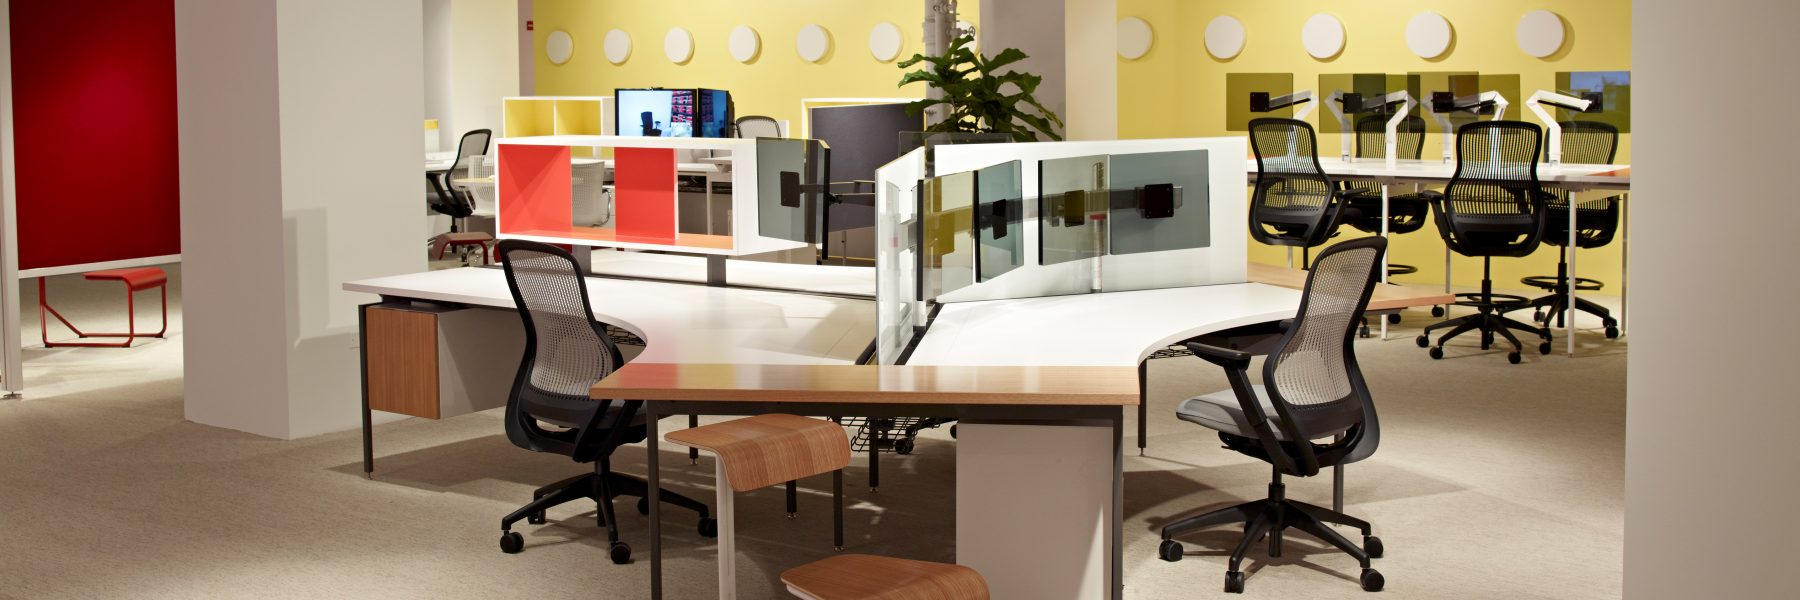 Create a modern workspace for productivity and collaboration.